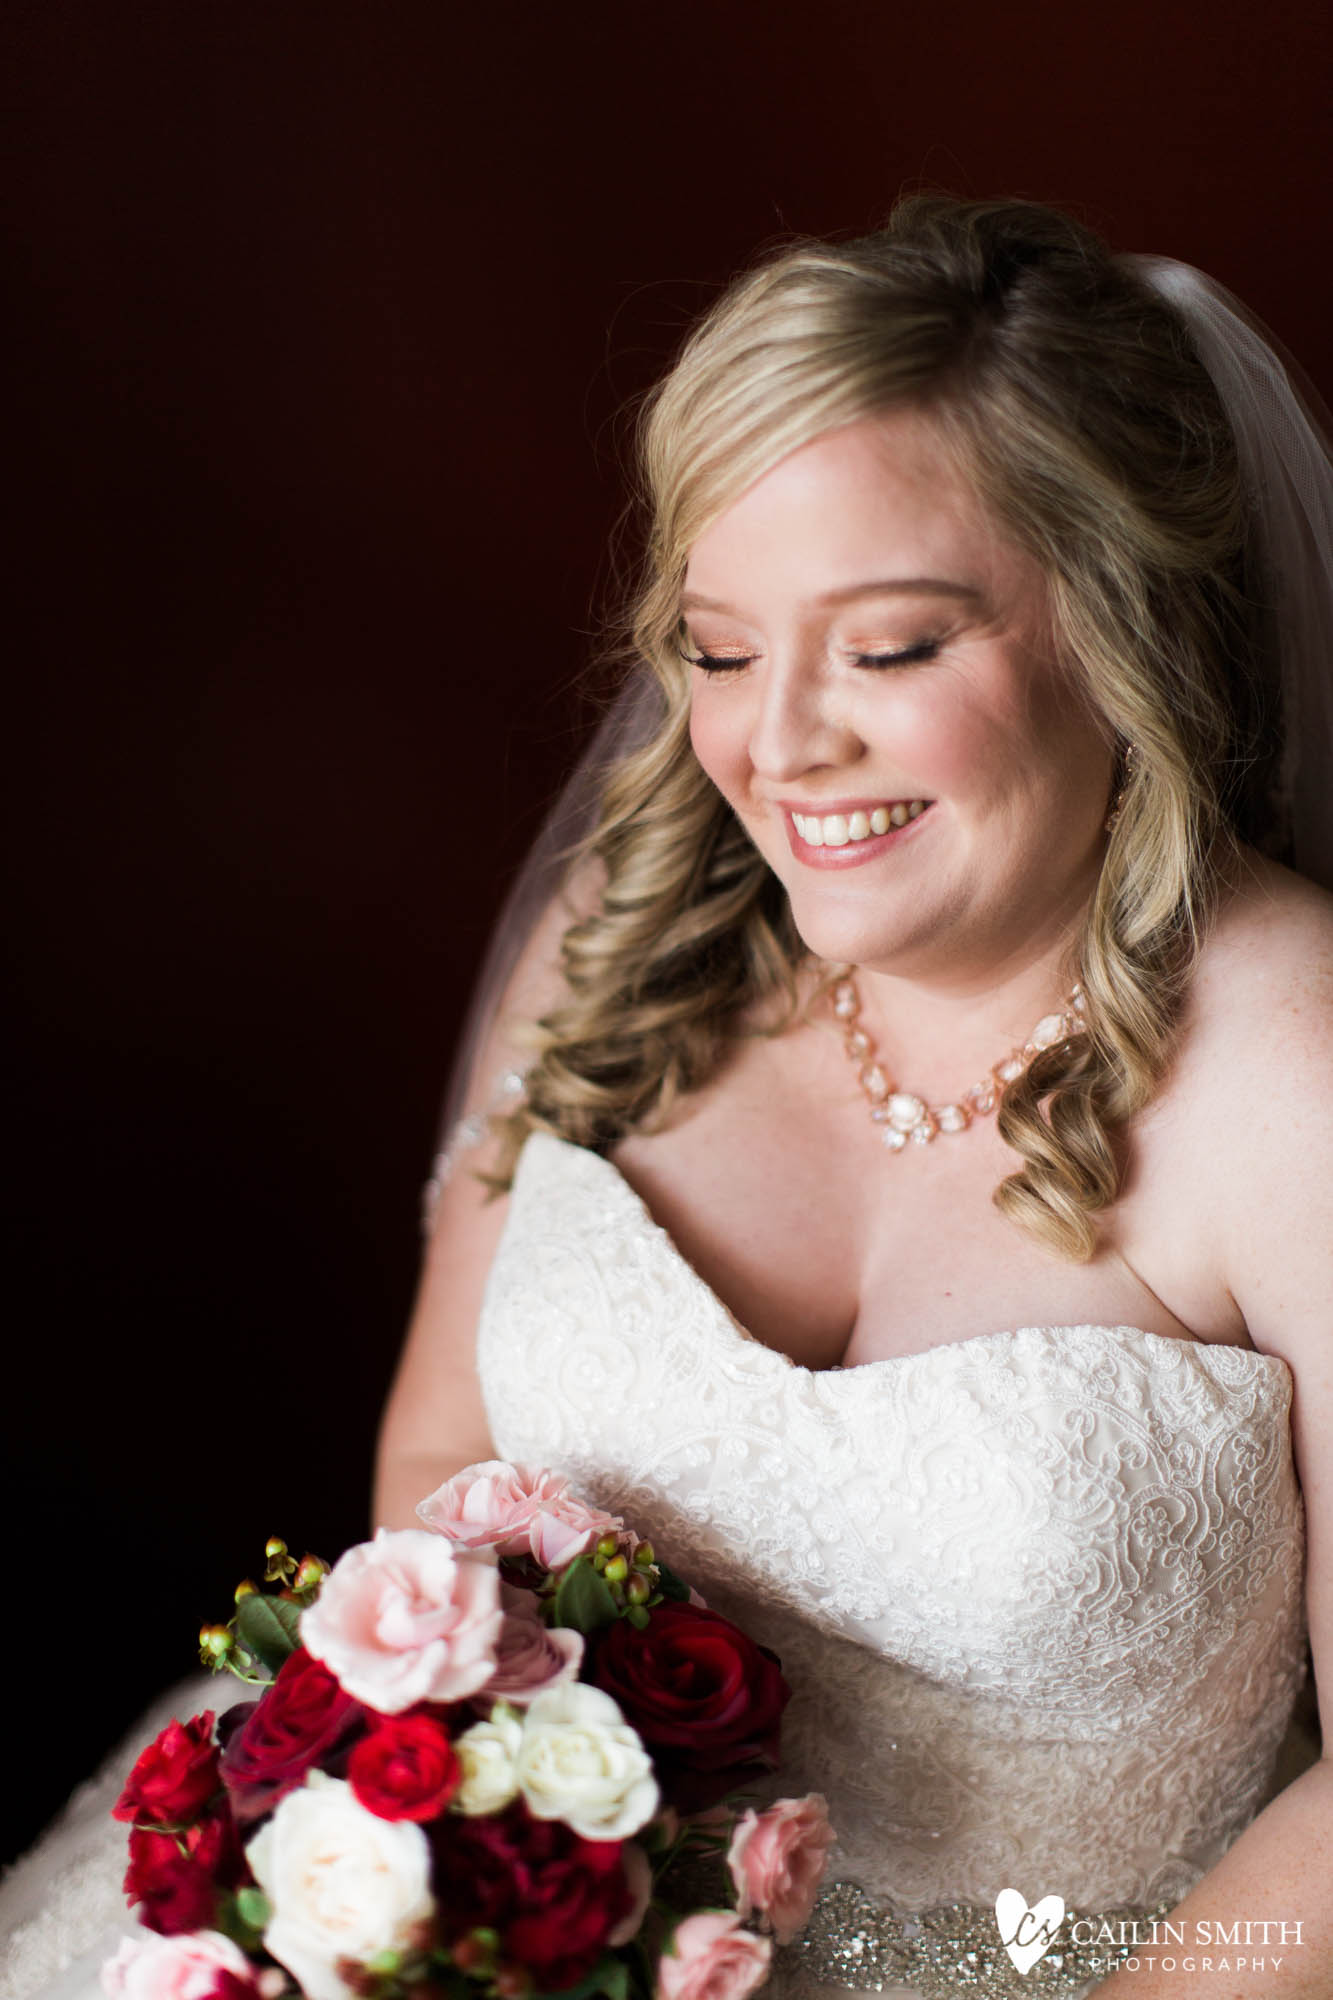 Christie_Nathan_Wedding_Photography_0015.jpg